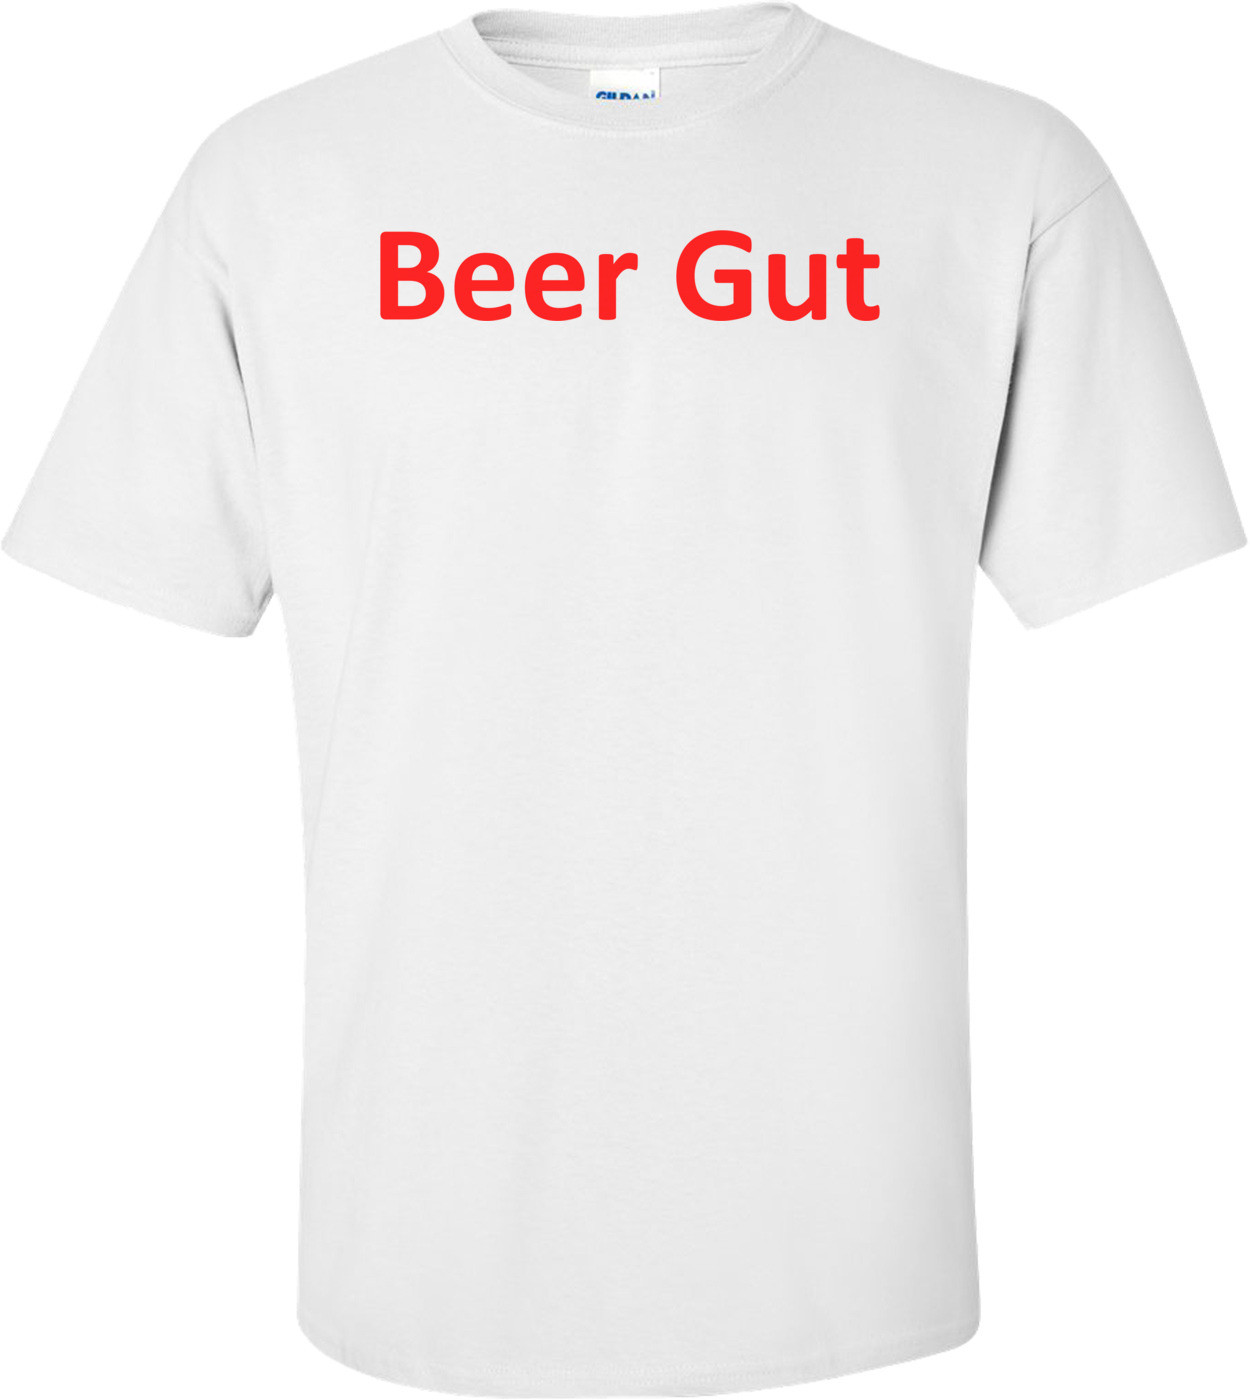 Beer Gut T-Shirt